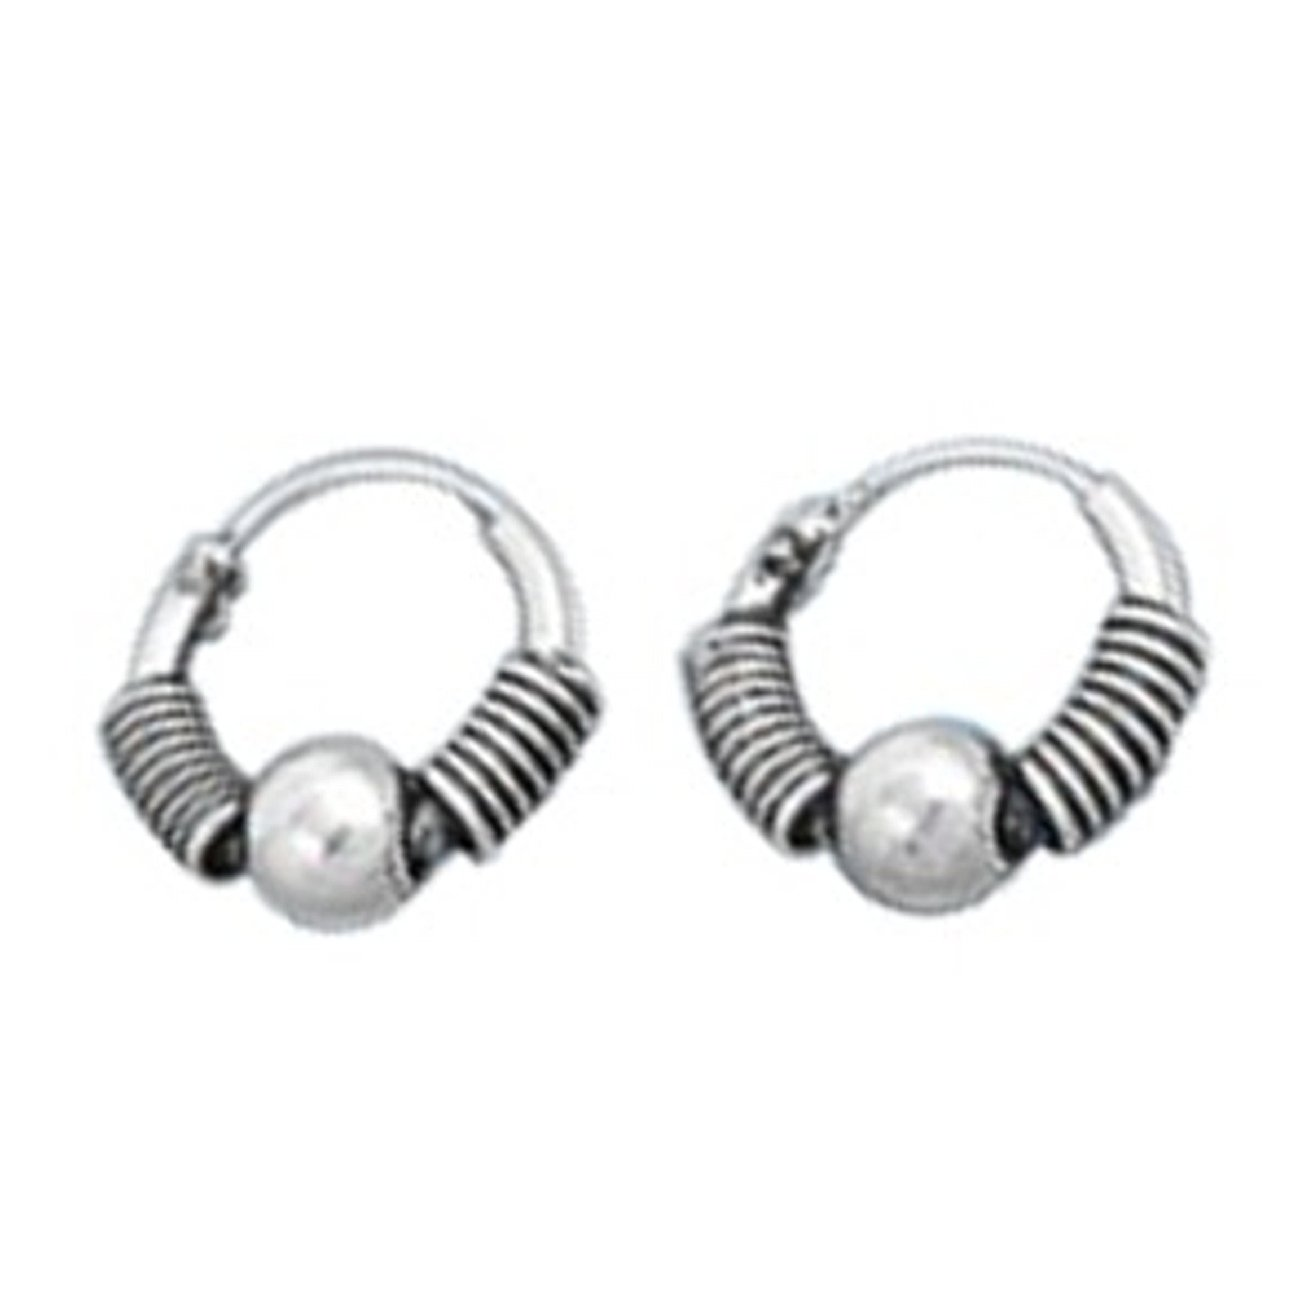 Sterling Silver 10mm 13//32 Tight Wrap Wire Ball Charm Tubular Endless Hoop Earrings